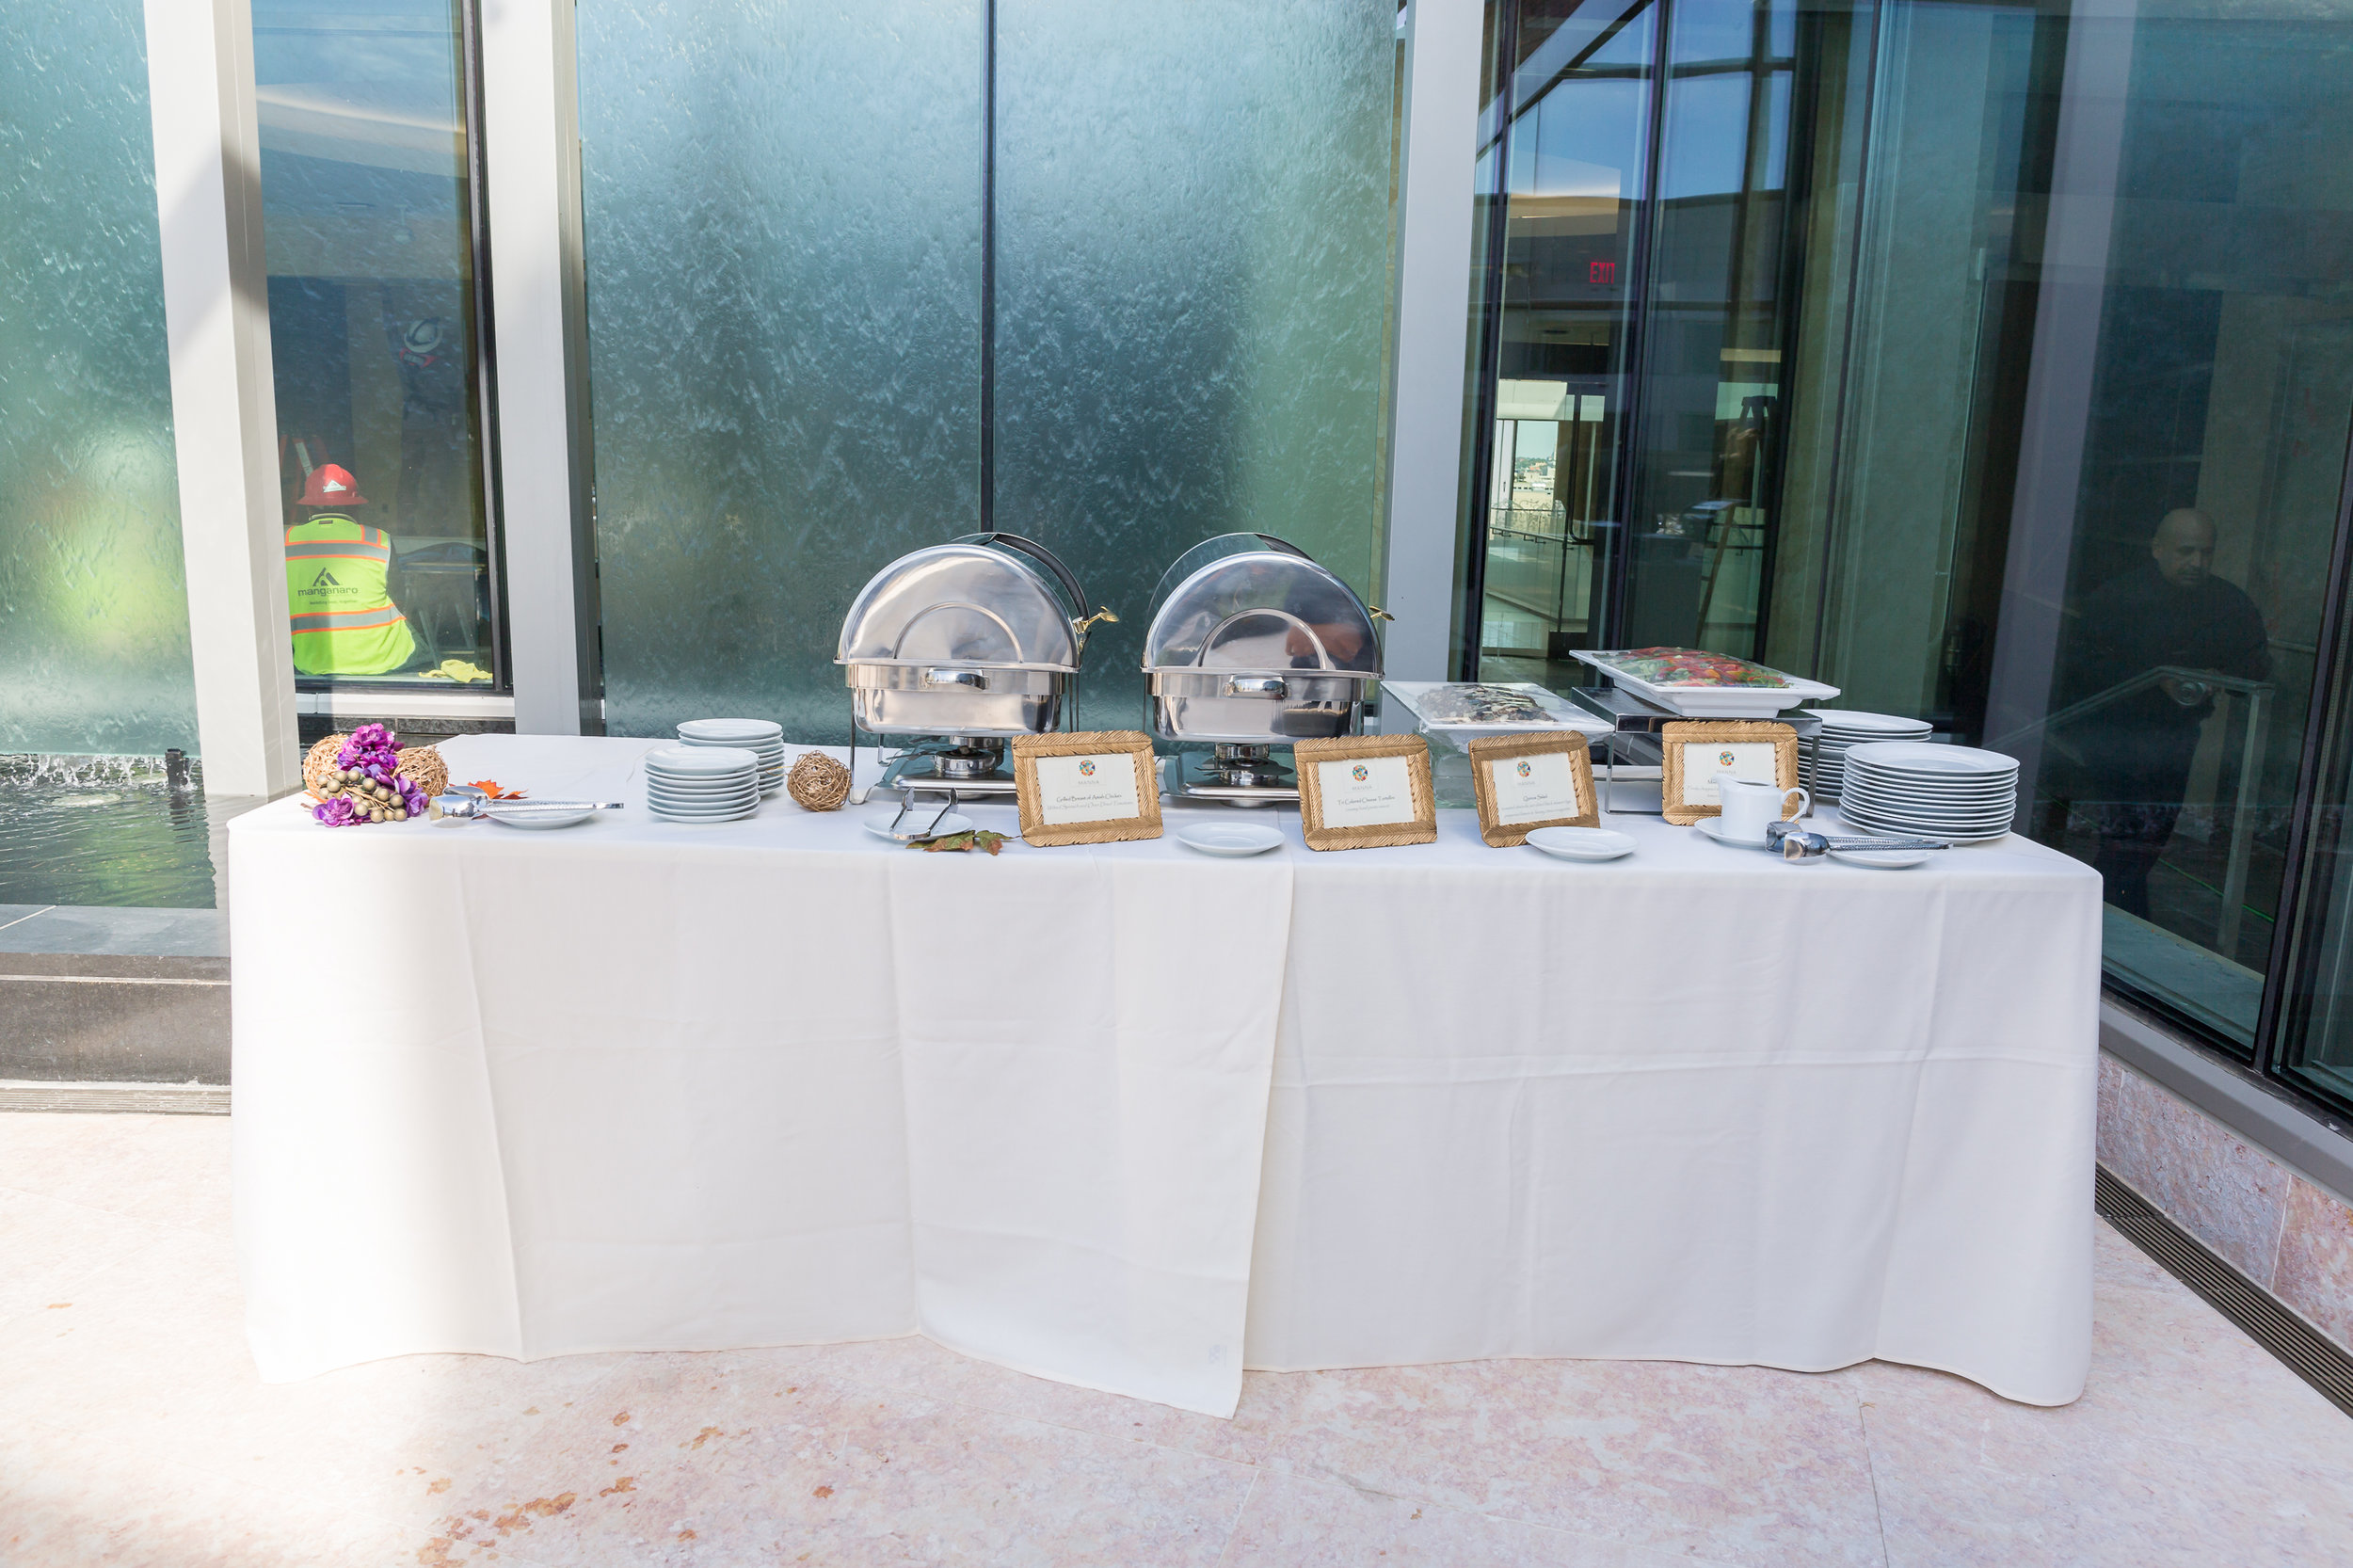 Patio Buffet Set Up.jpg